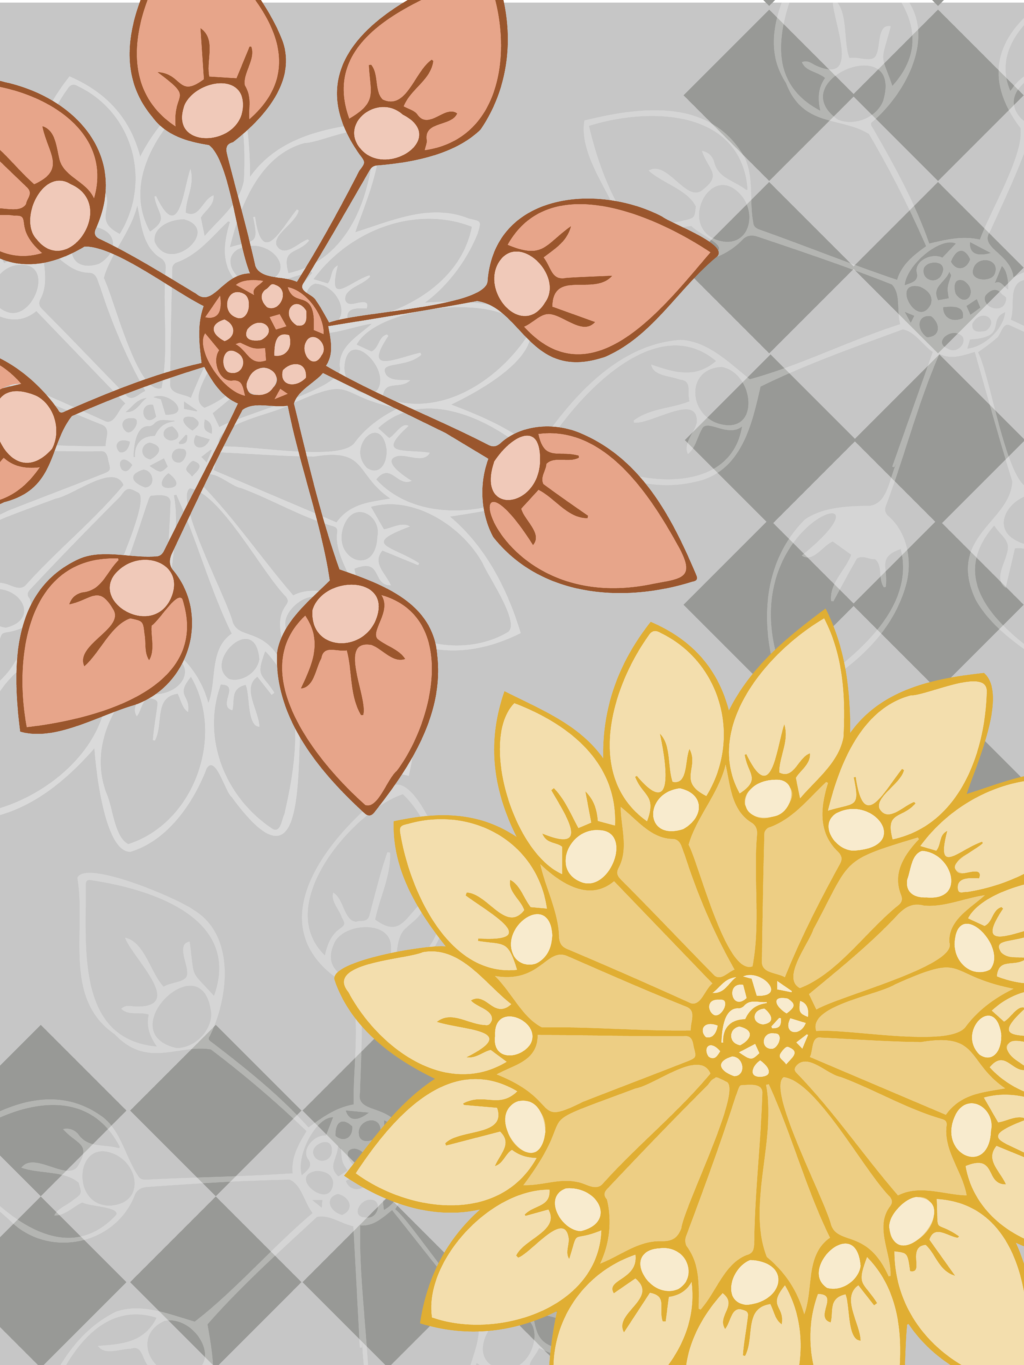 The yellow, coral, and gray floral pattern